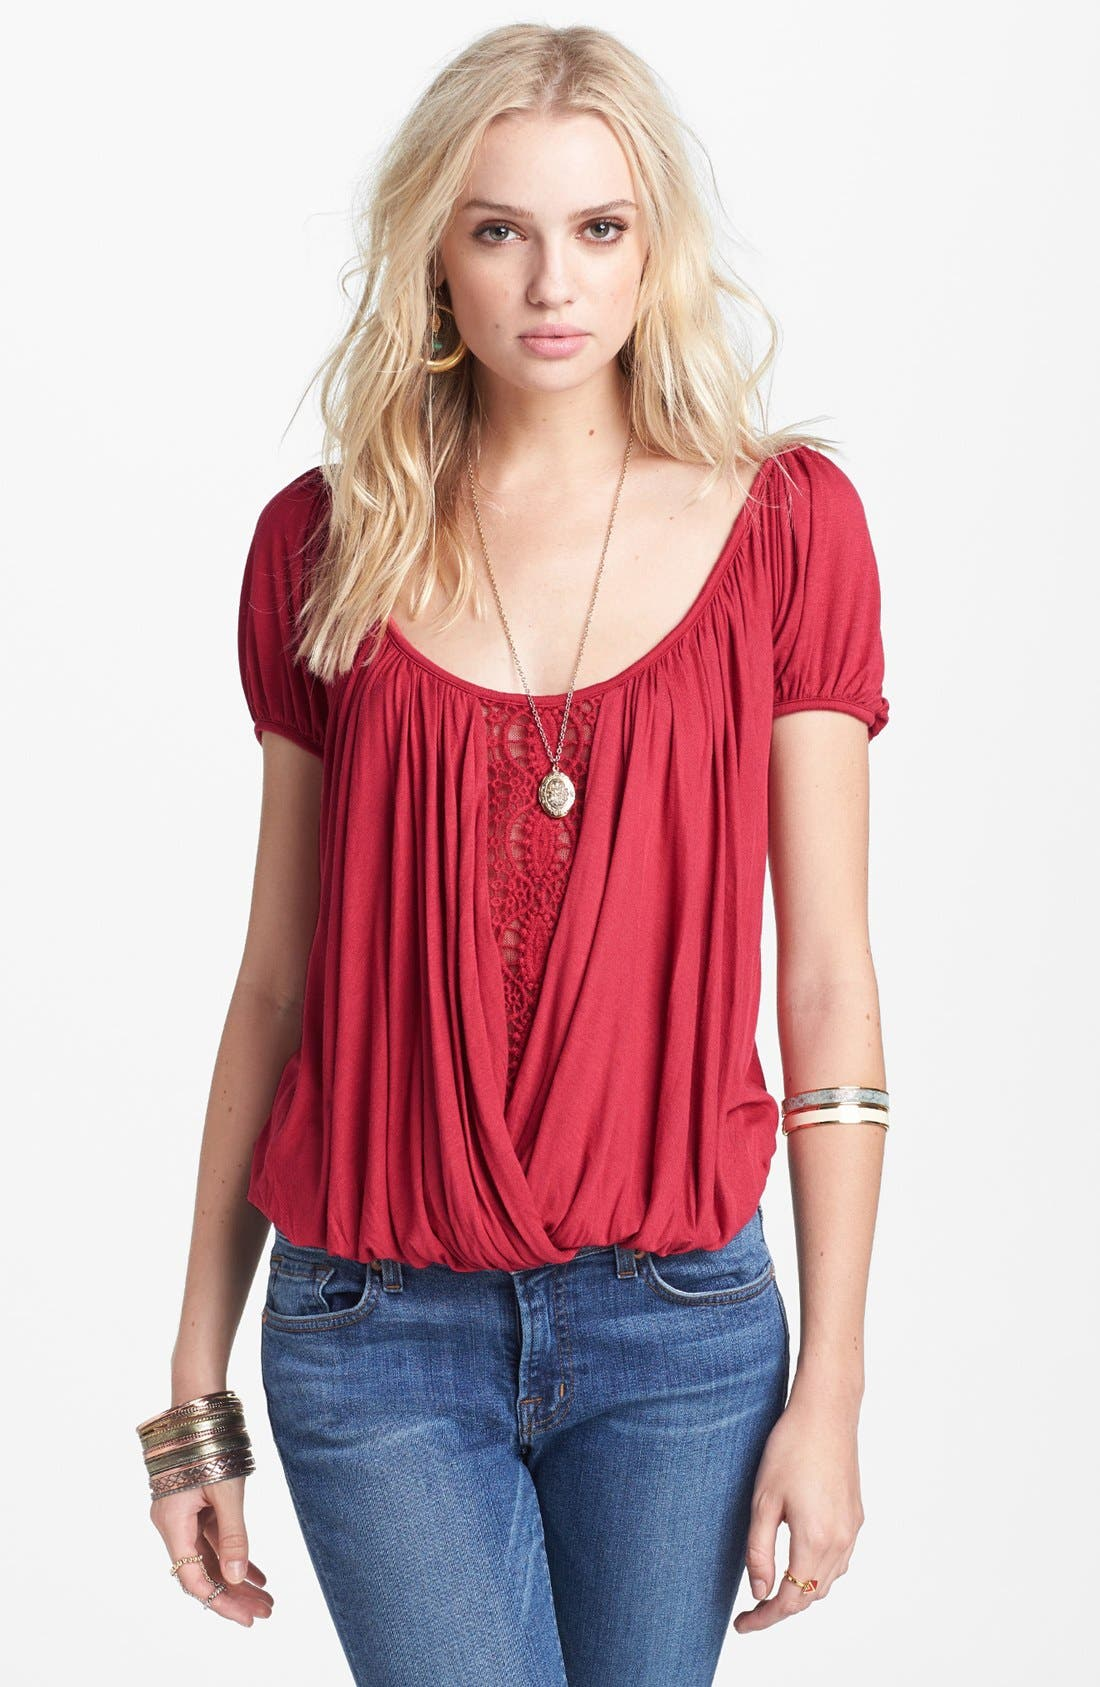 Main Image - Free People 'Anns' Crochet Trim Gathered Top